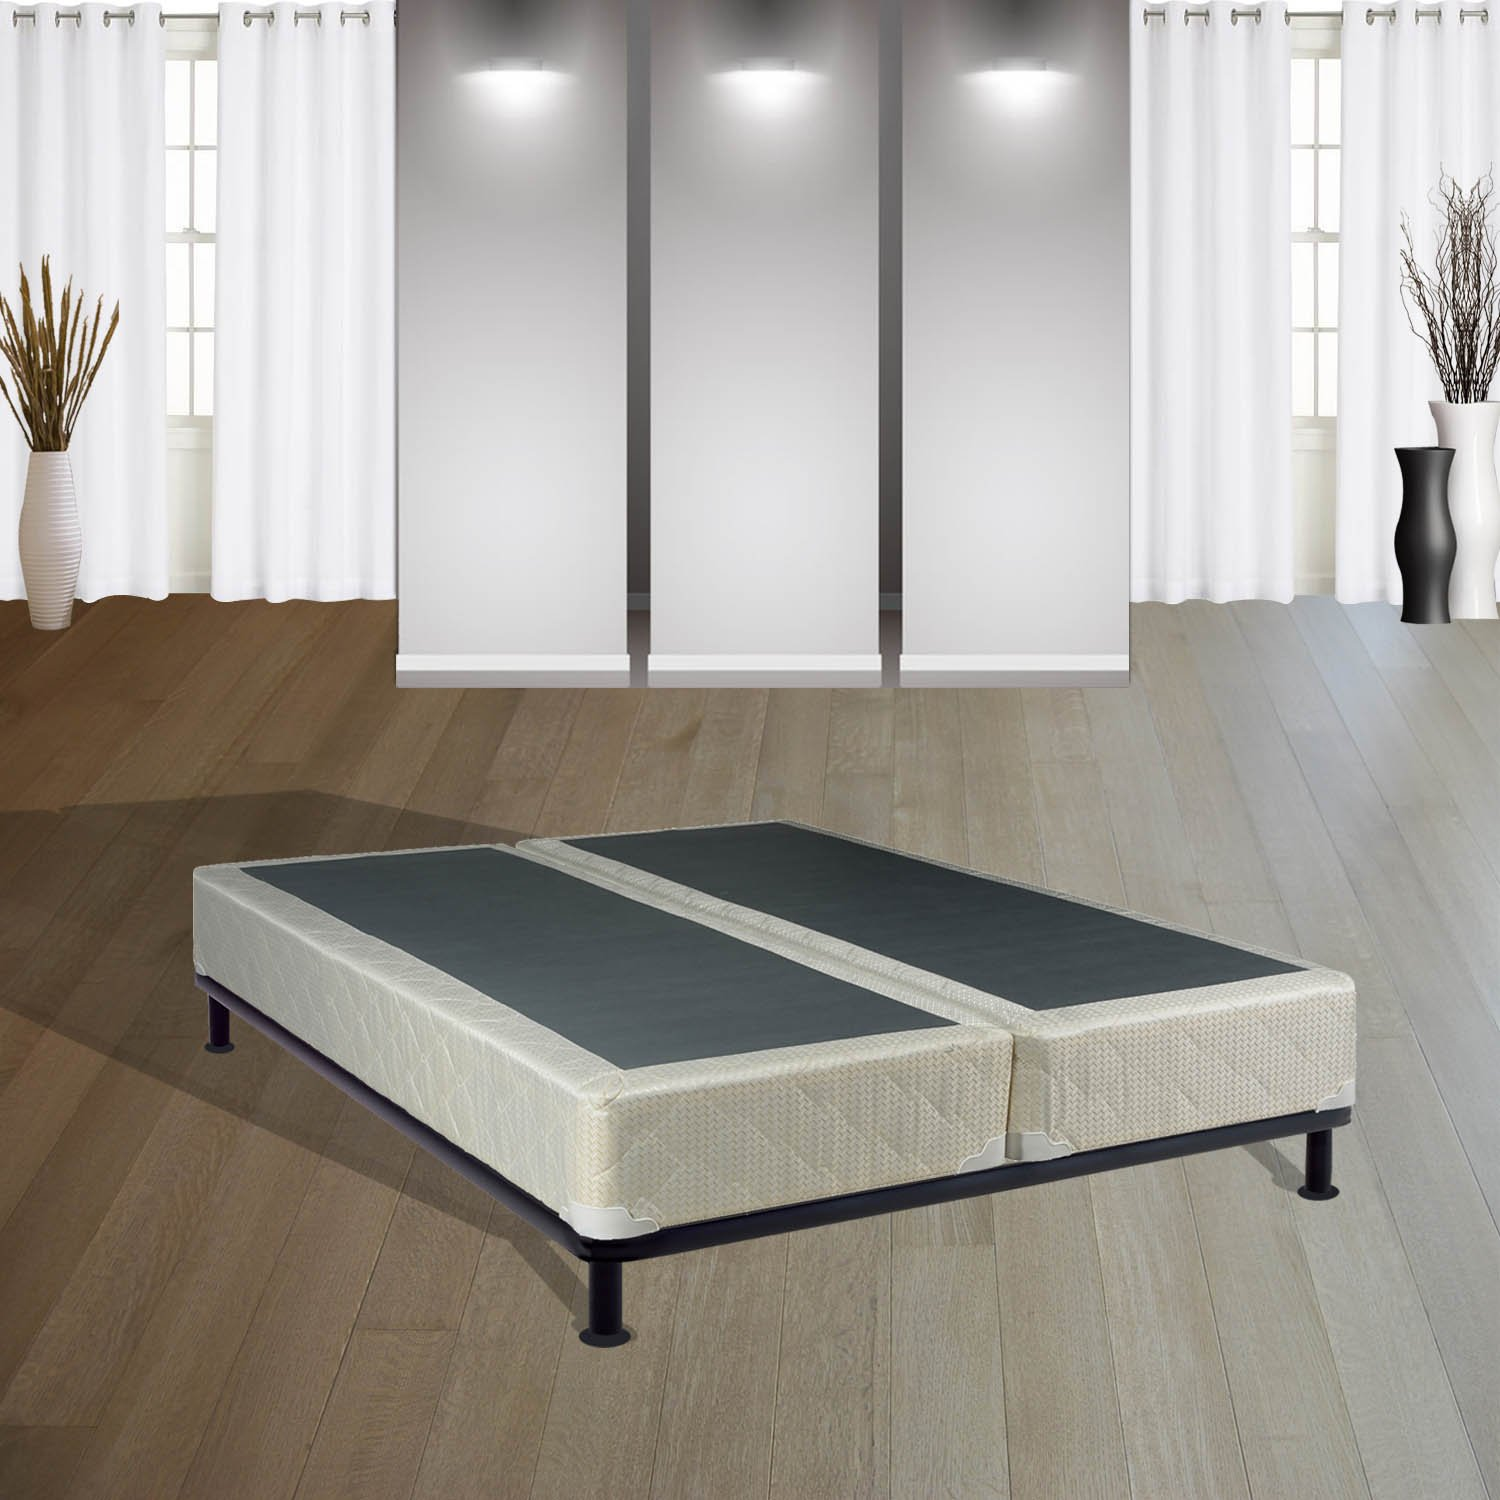 continental sleep 8 inch queen size fully assembled split box springs for ma ebay. Black Bedroom Furniture Sets. Home Design Ideas